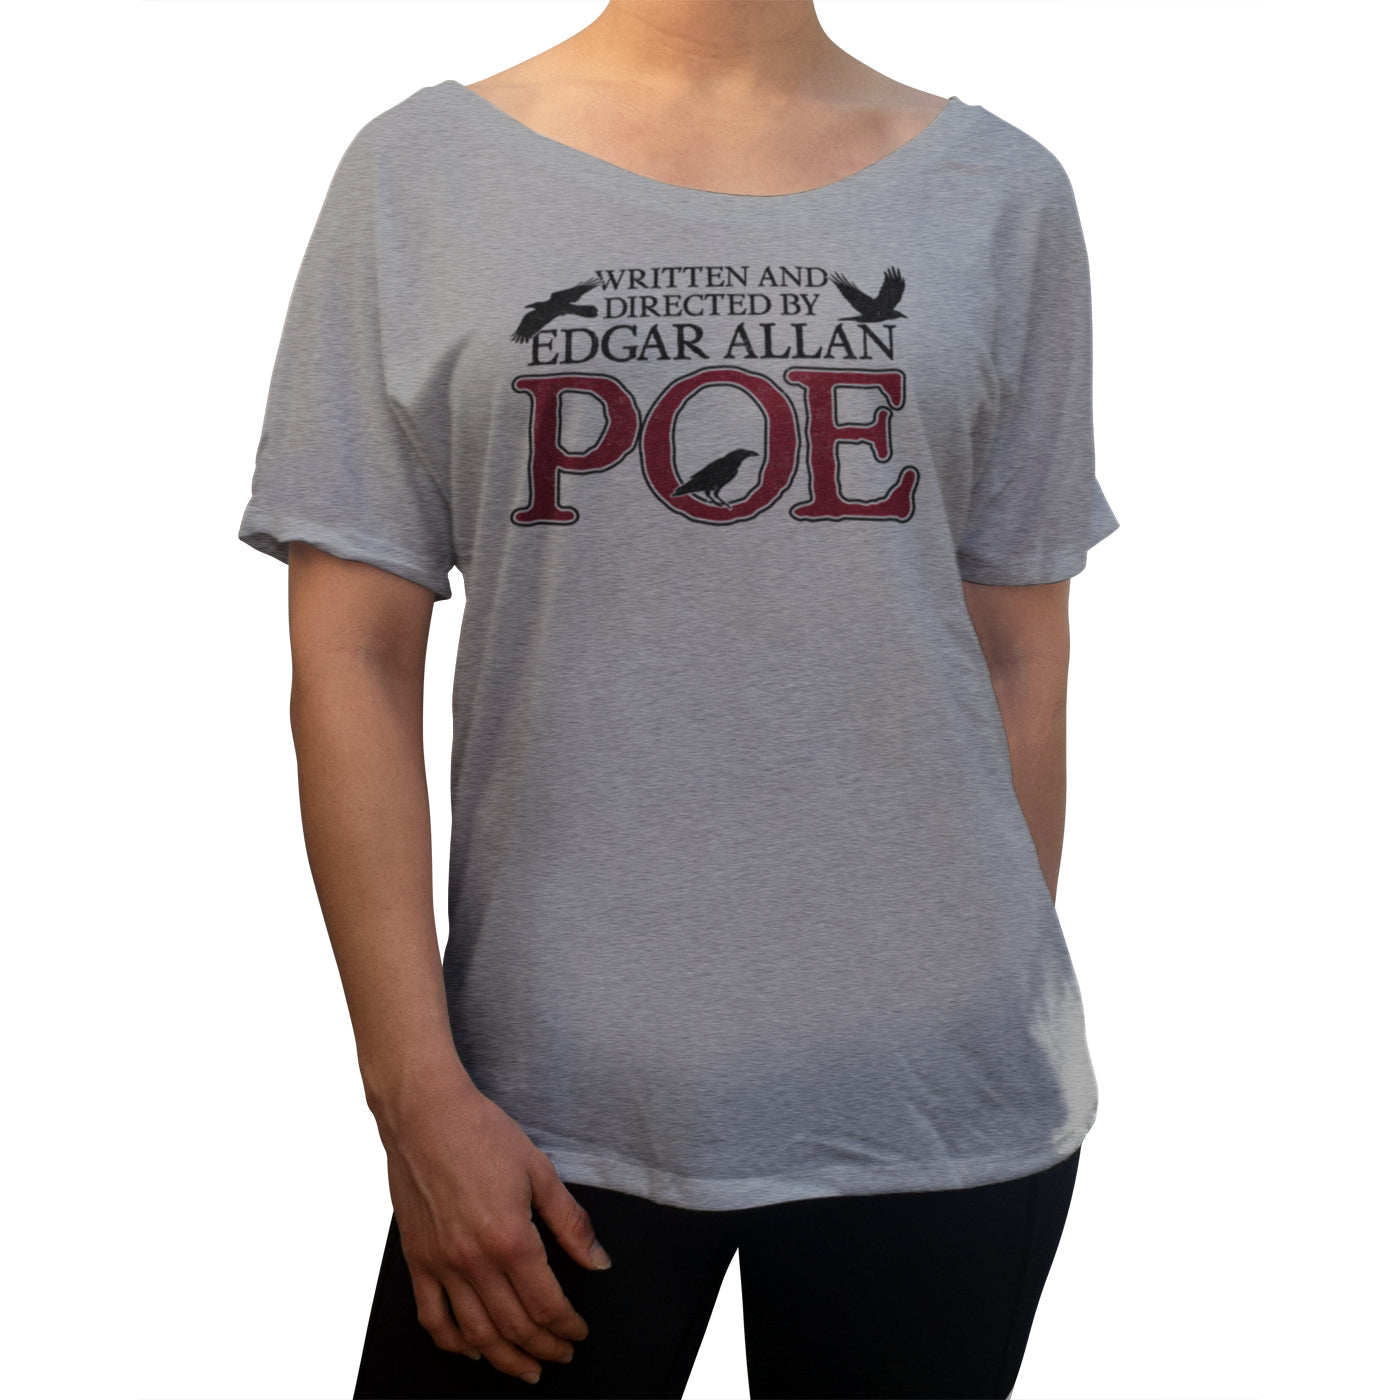 Women's Written and Directed by Edgar Allan Poe Scoop Neck T-Shirt